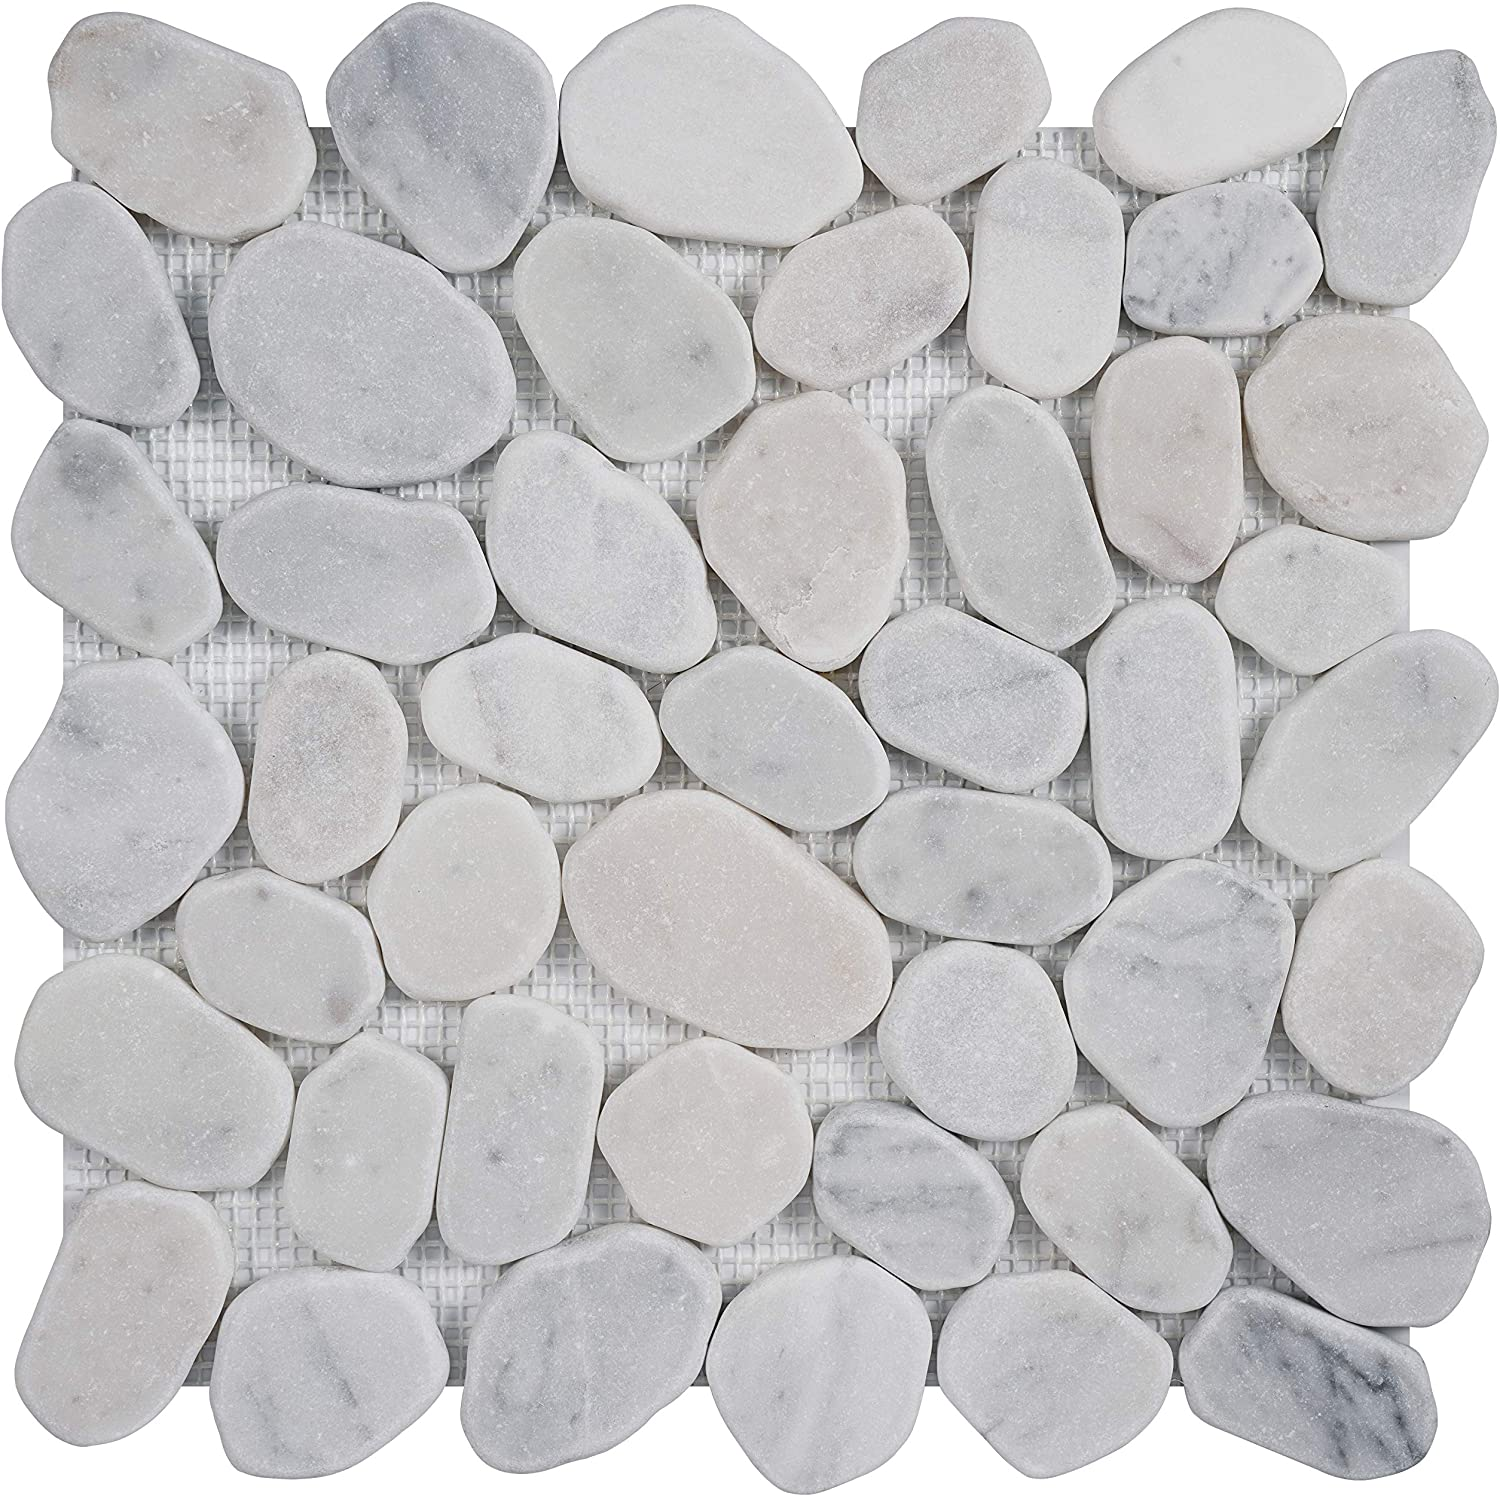 Simple Tile - 5 Sheets Kitchen Year-end gift for Mosaic Marble Backsplash Popular products